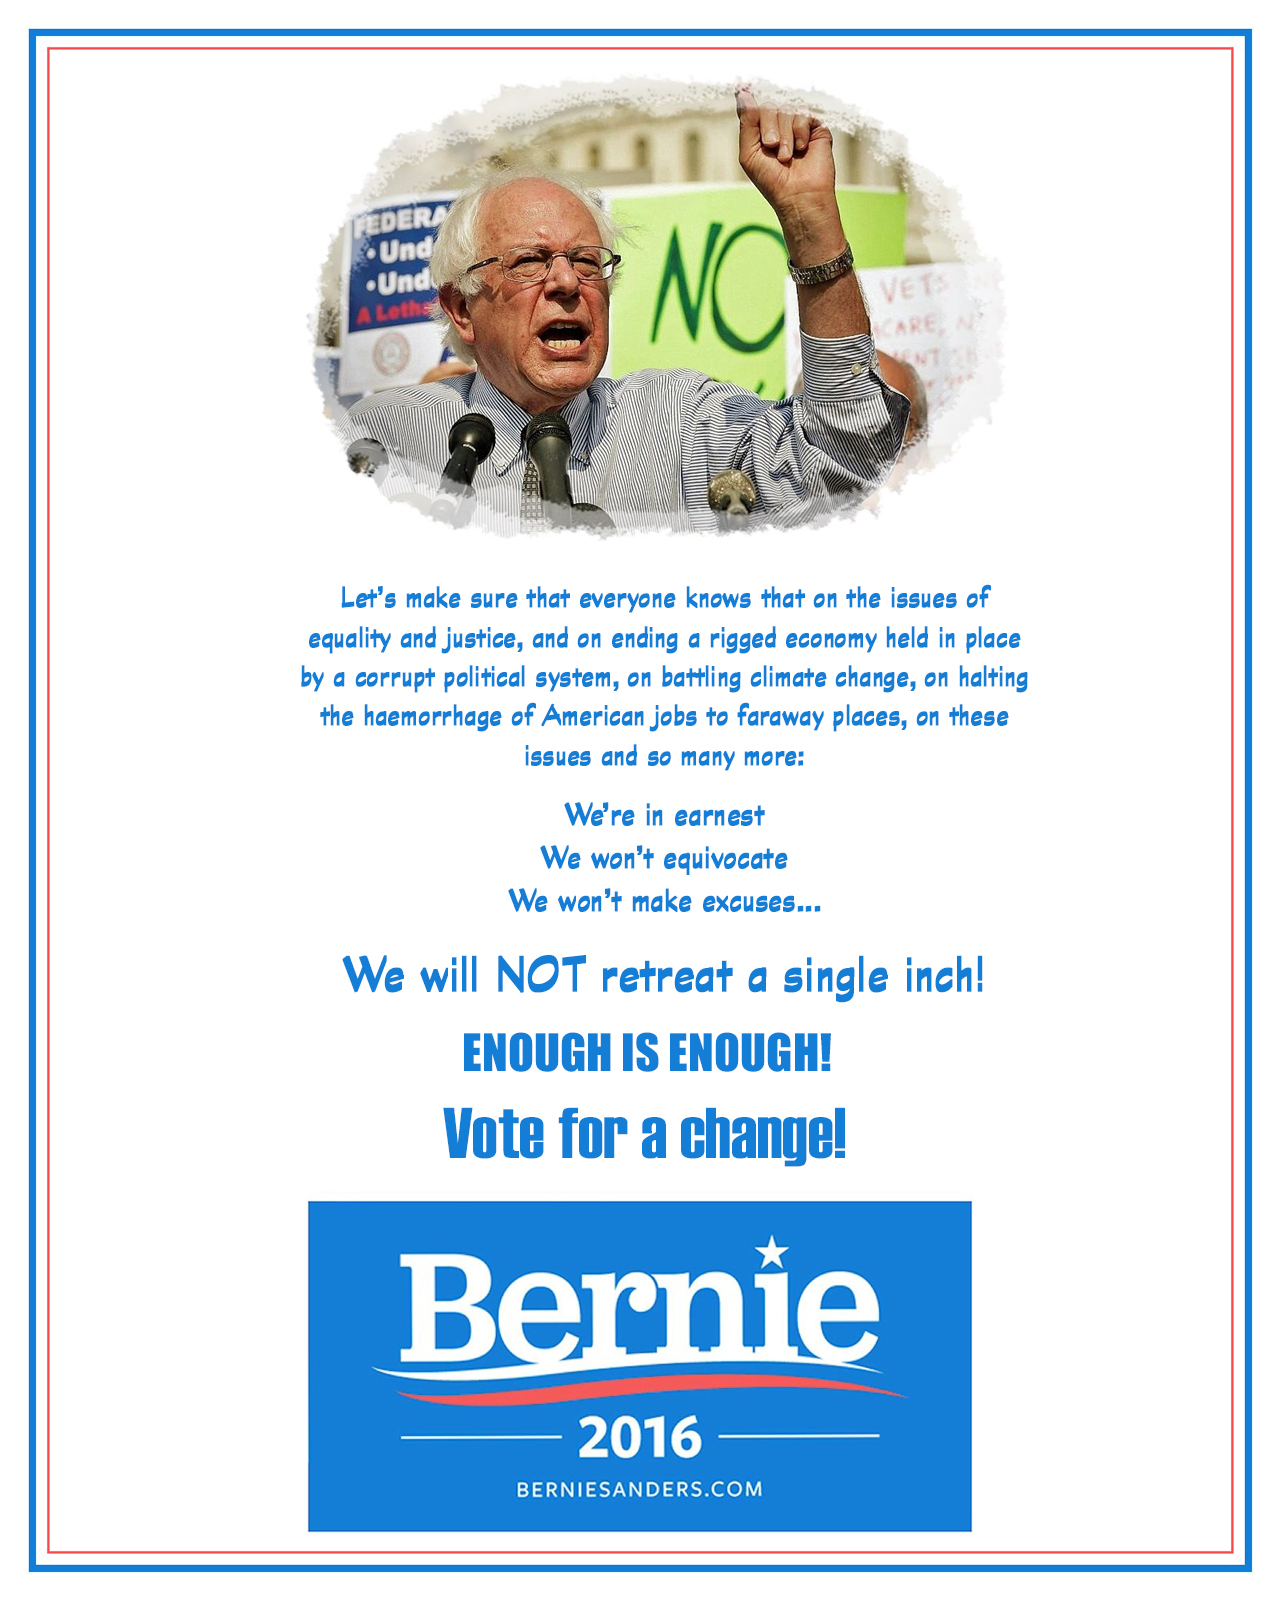 00 bernie we're in earnest 261015